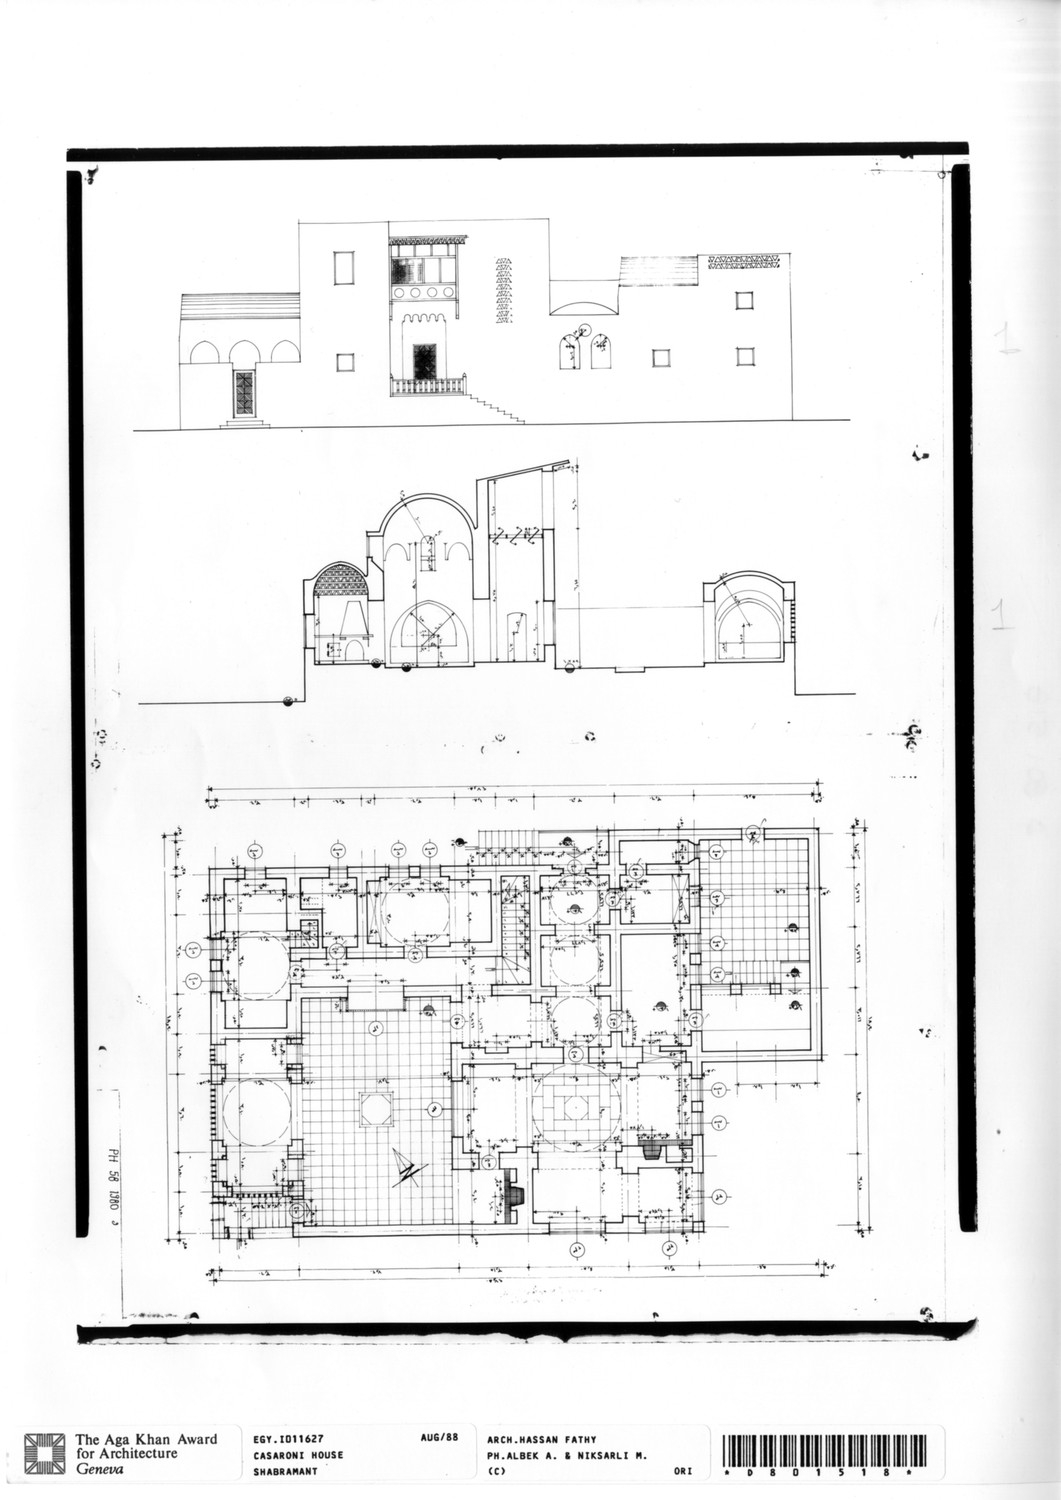 Drawing House Floor Plans: Working Drawing: Ground Floor Plan, Final